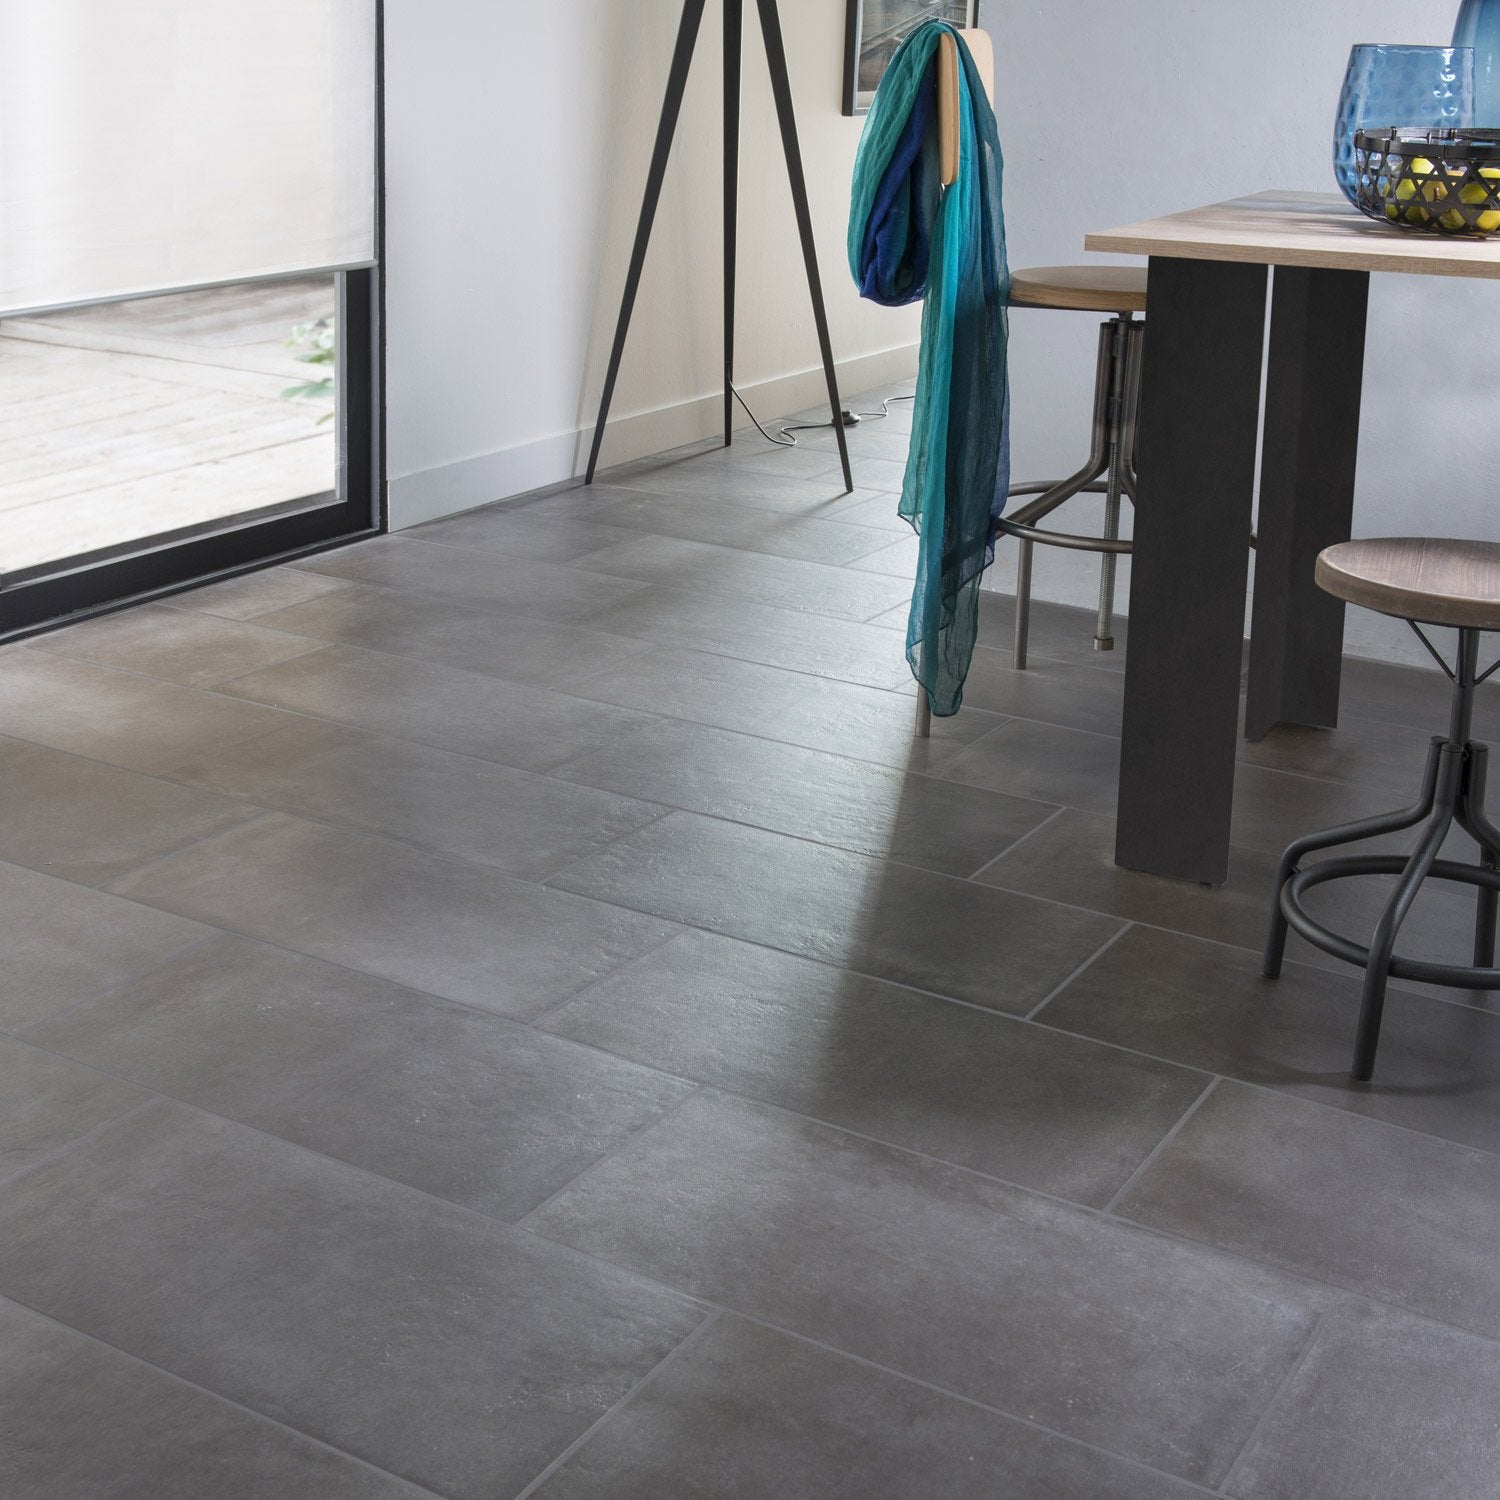 Carrelage sol et mur anthracite effet b ton time x l for Carrelage gris anthracite